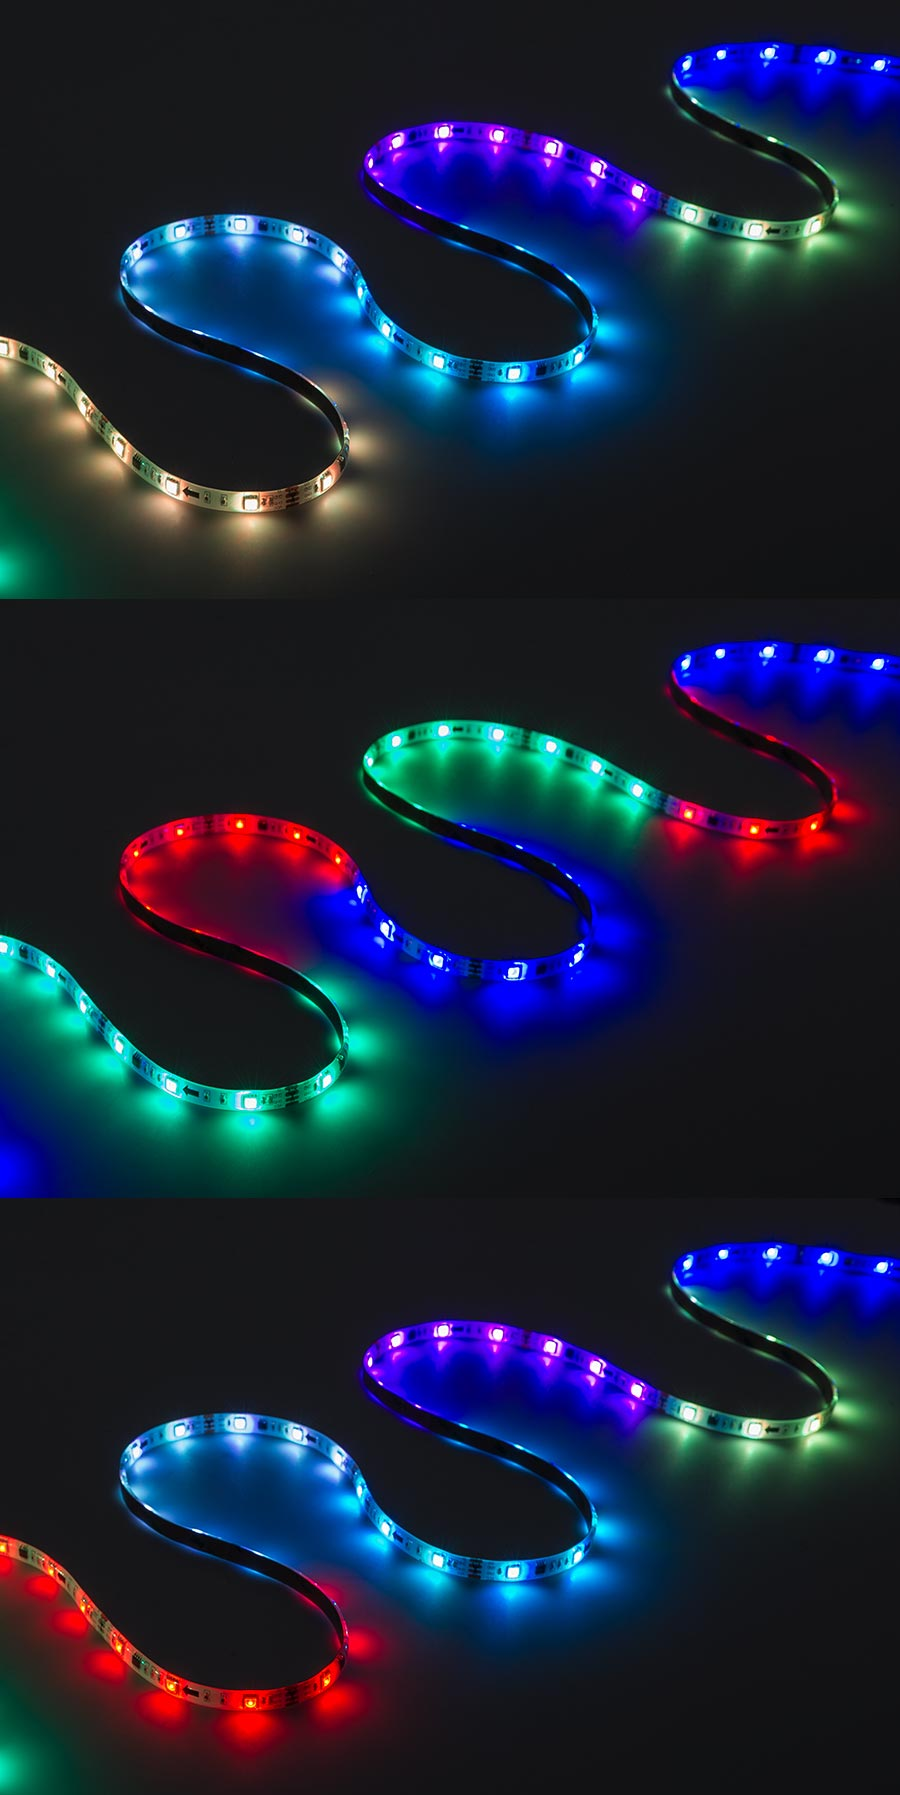 Outdoor rgb led strip lights color chasing 12v led tape light waterproof color chasing led light strips with multi color leds 1640ft 5m waterproof color chasing led light strips with multi color leds 1640ft aloadofball Gallery